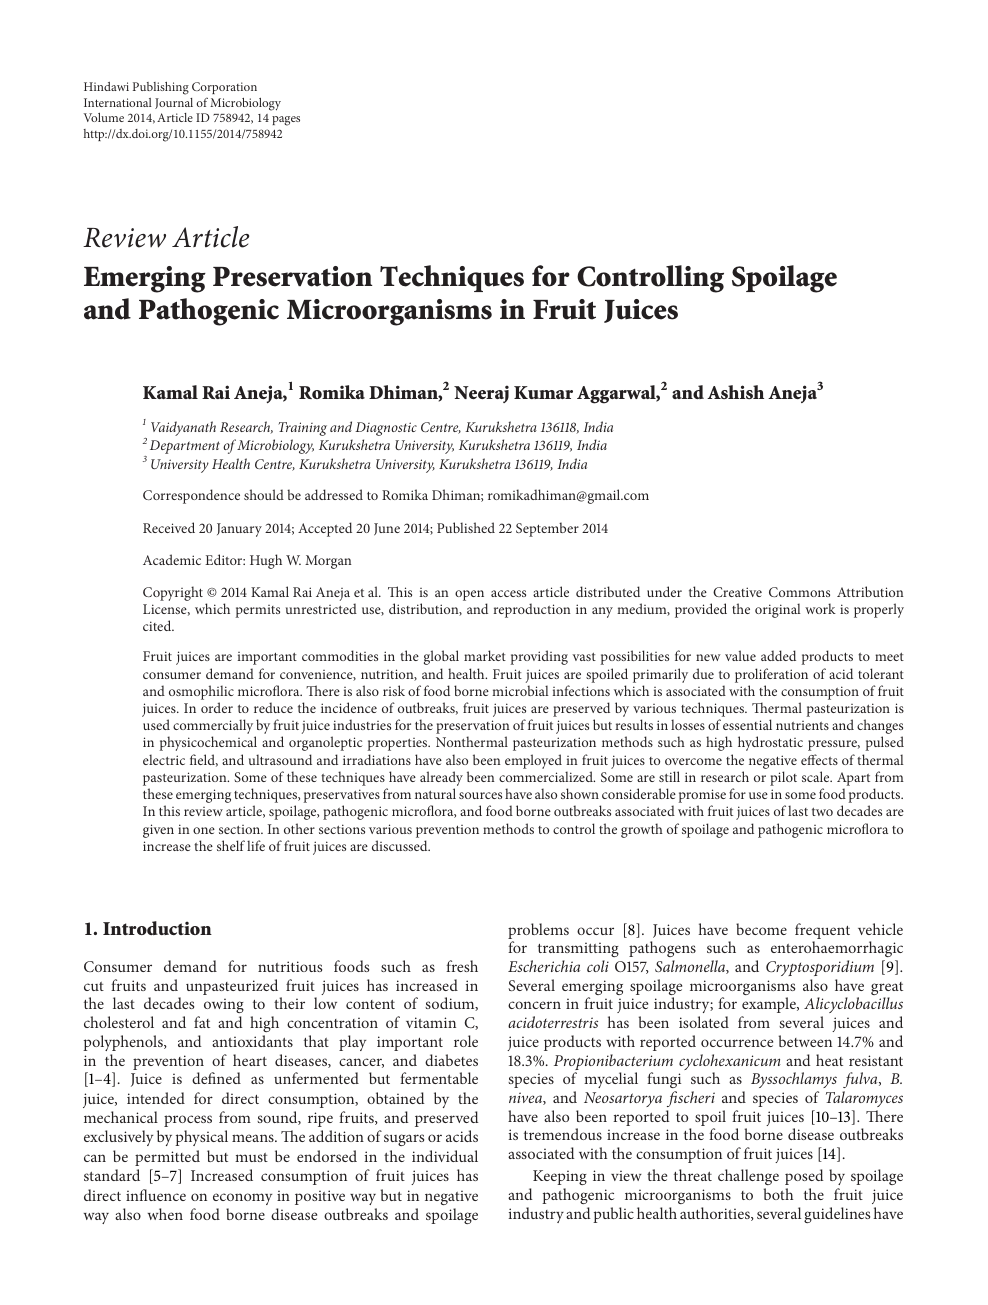 Emerging Preservation Techniques for Controlling Spoilage and